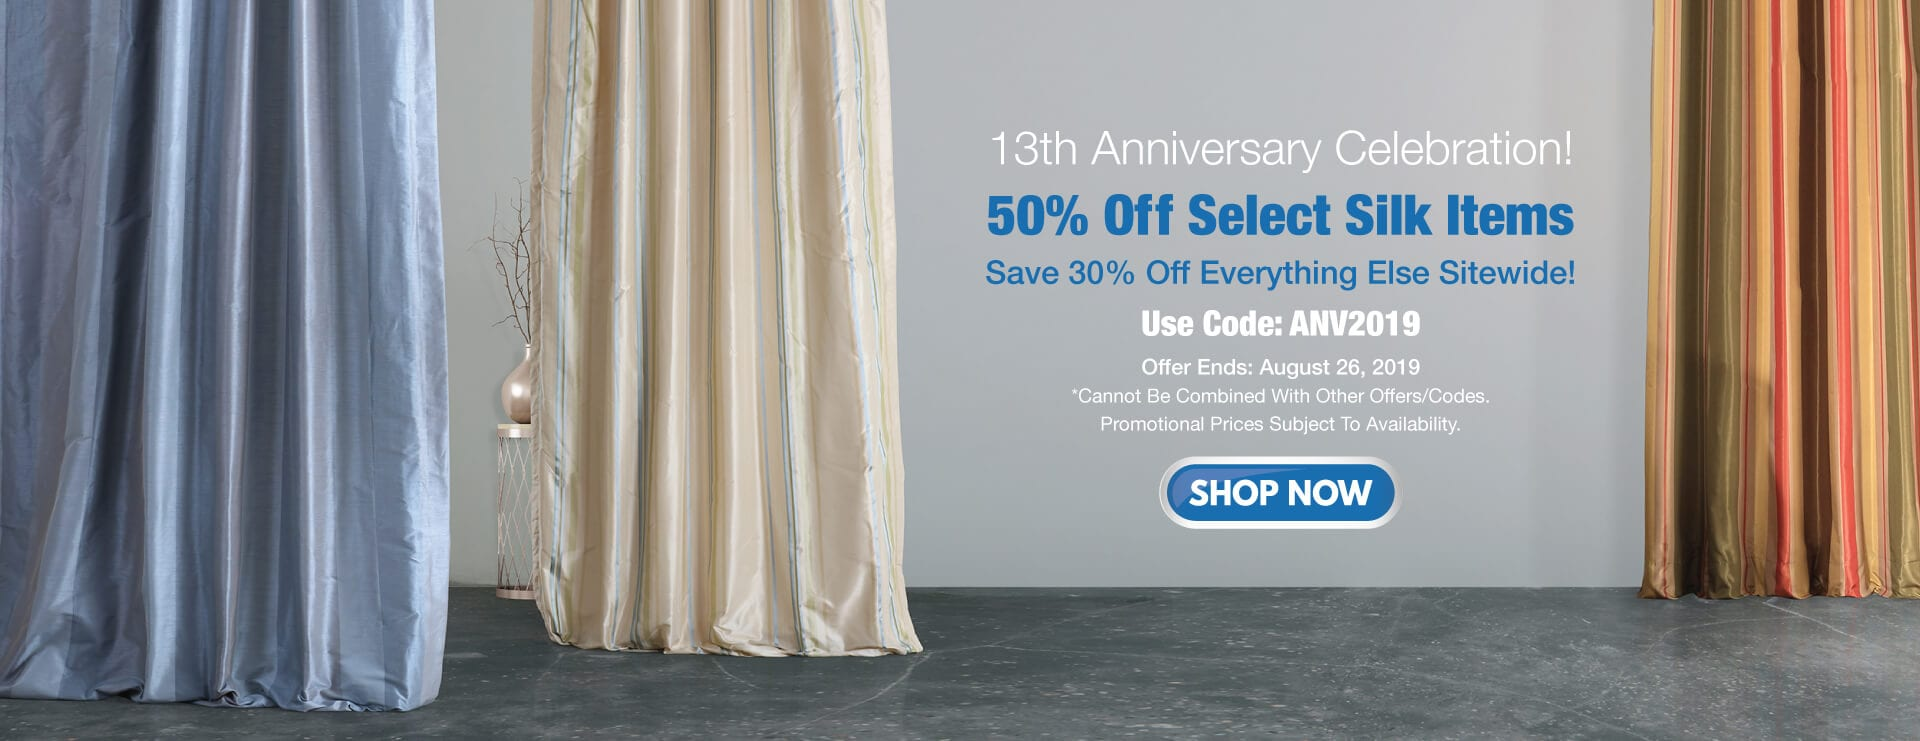 13th Anniversary Sale! Take  50% Off on selected items + 30% Off Site wide.